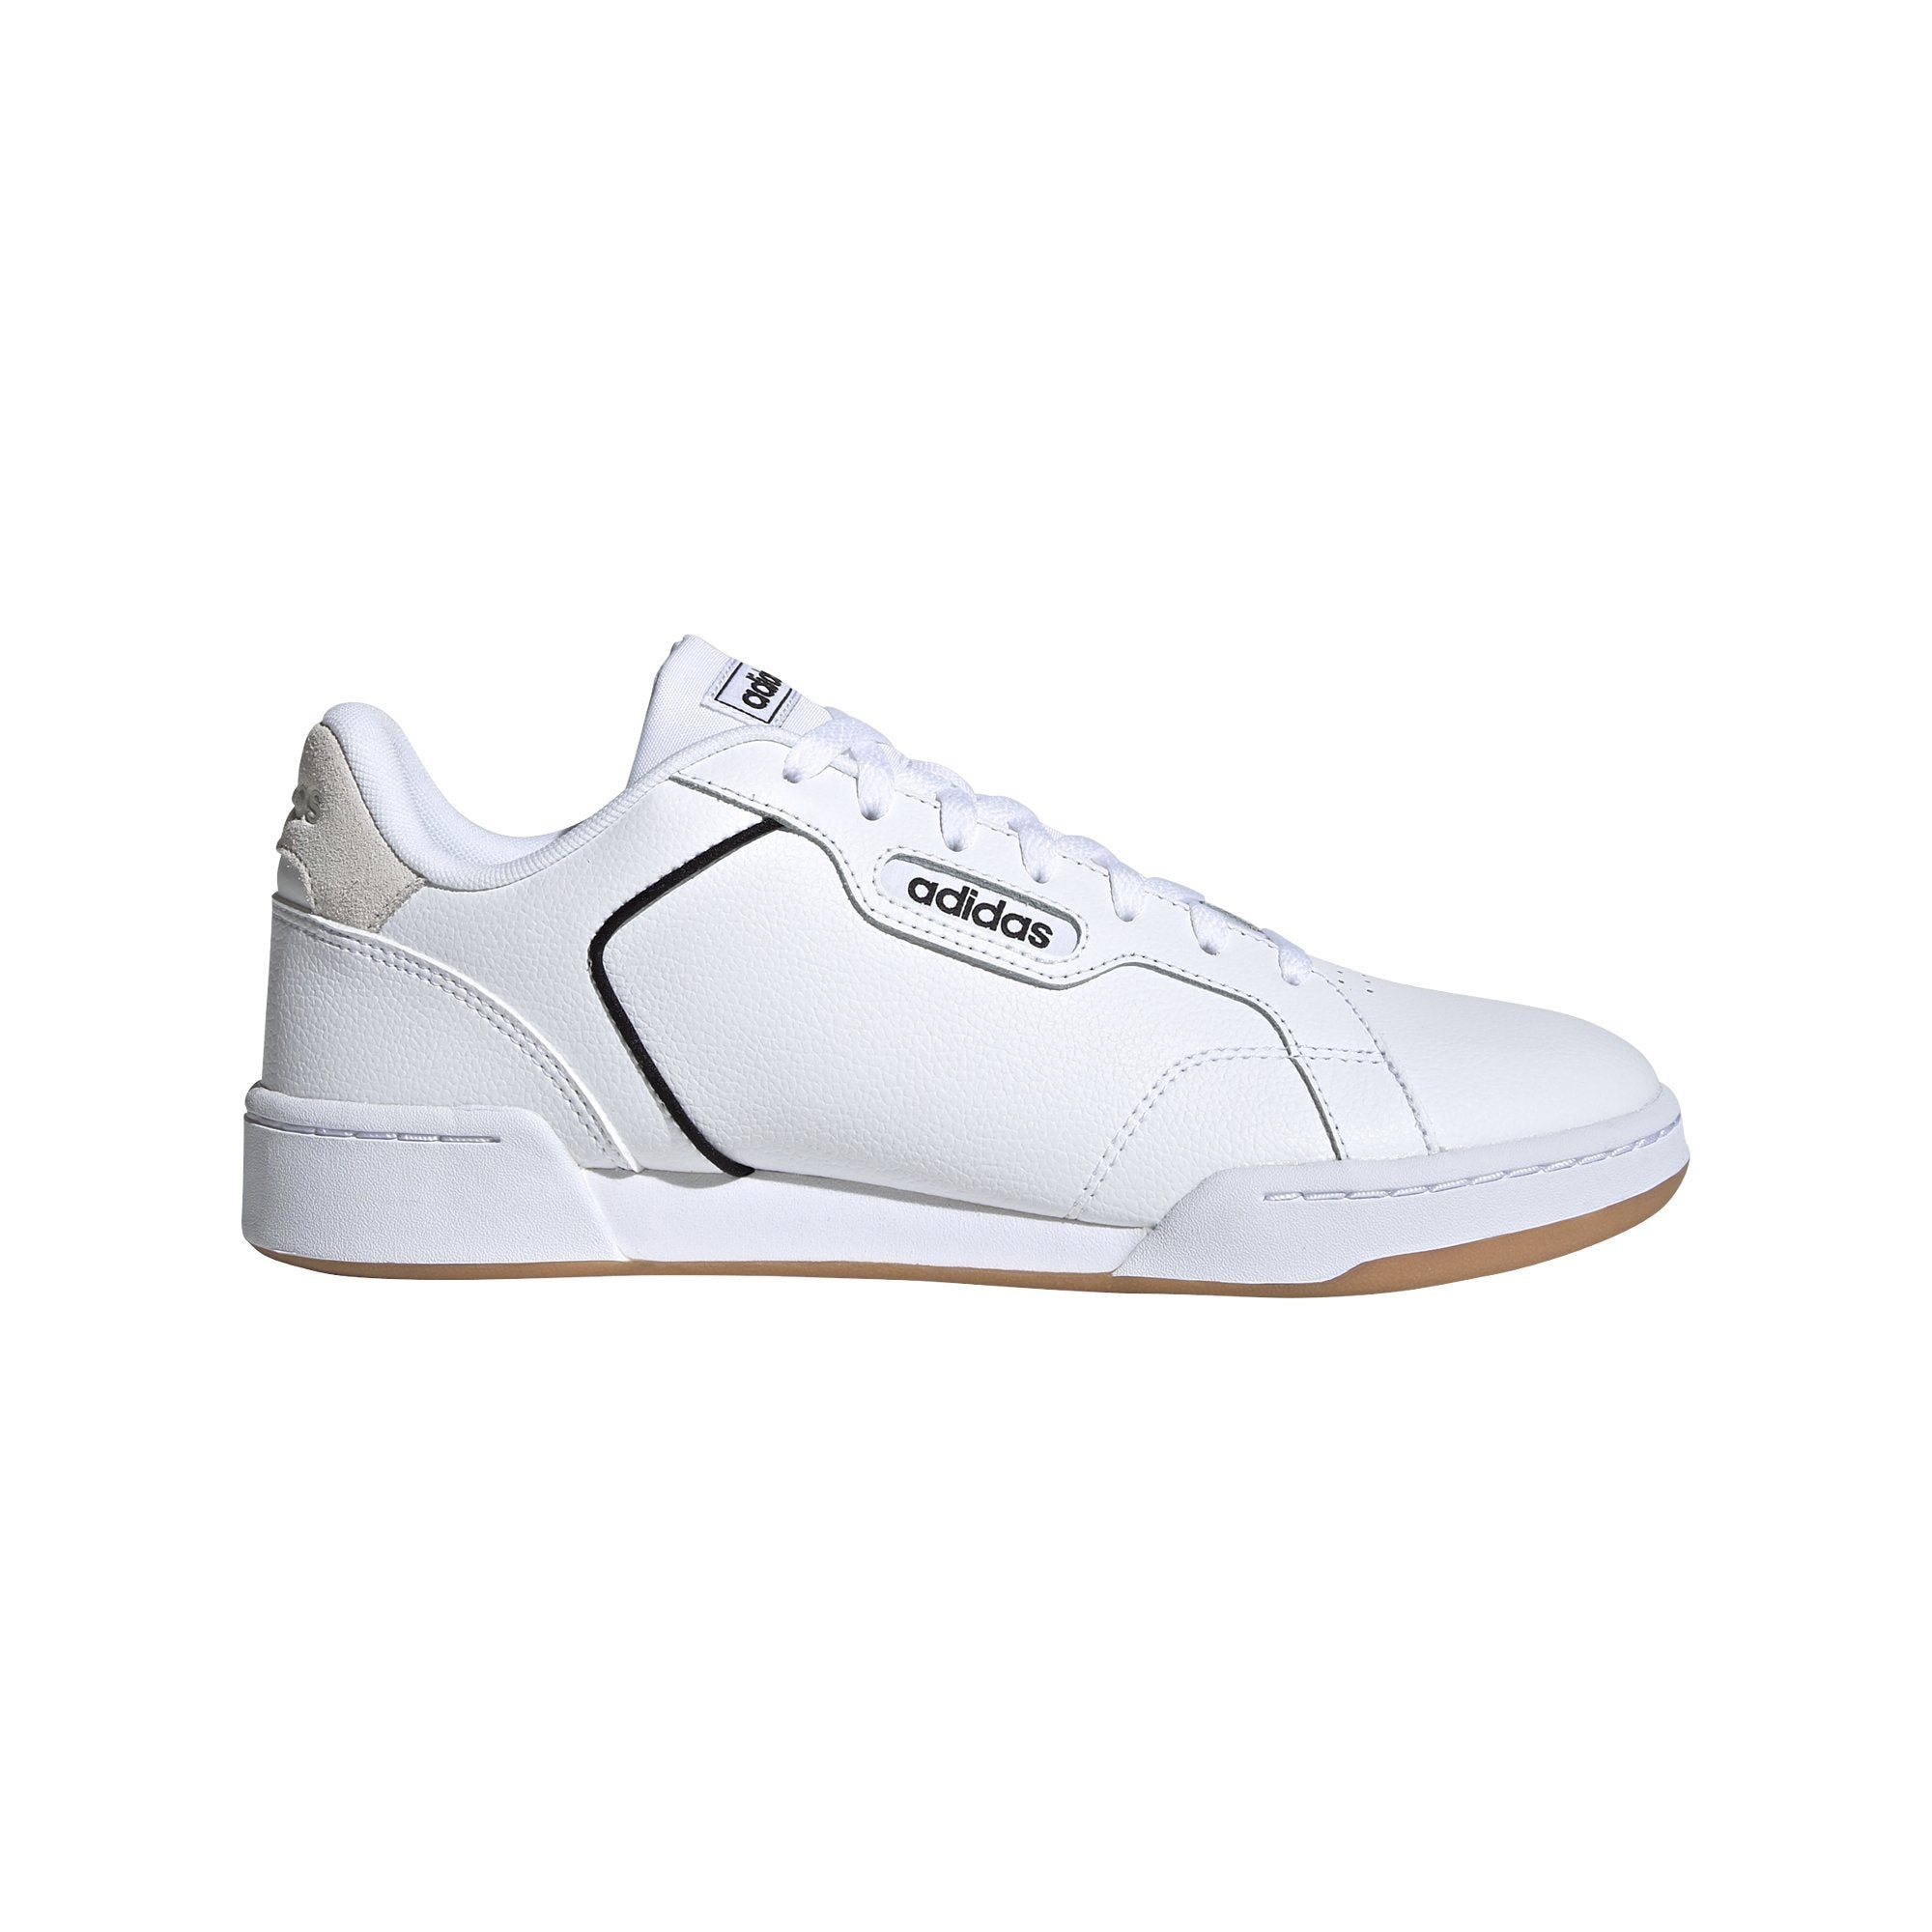 Adidas Mens Roguera - ftwr white/ftwr white/core black SP-Footwear-Mens Adidas